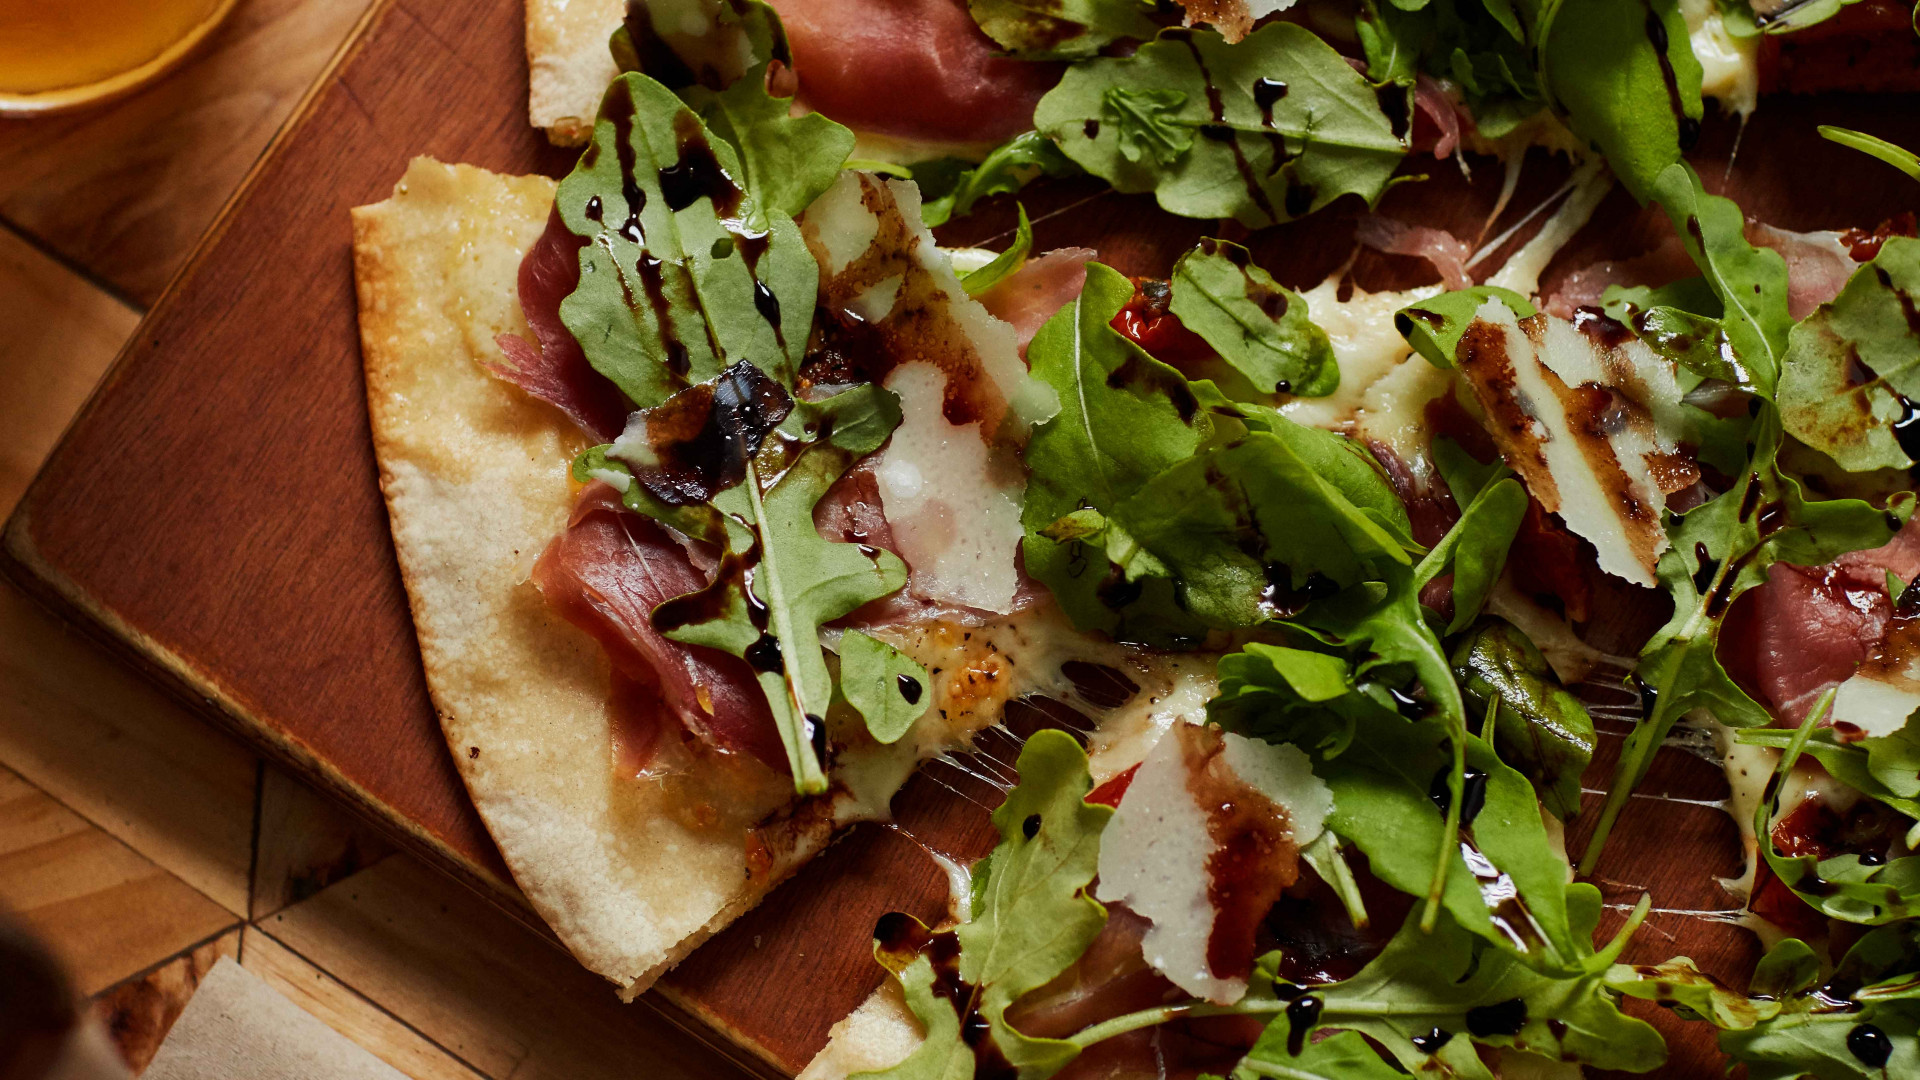 Crate's prosciutto and rocket pizza